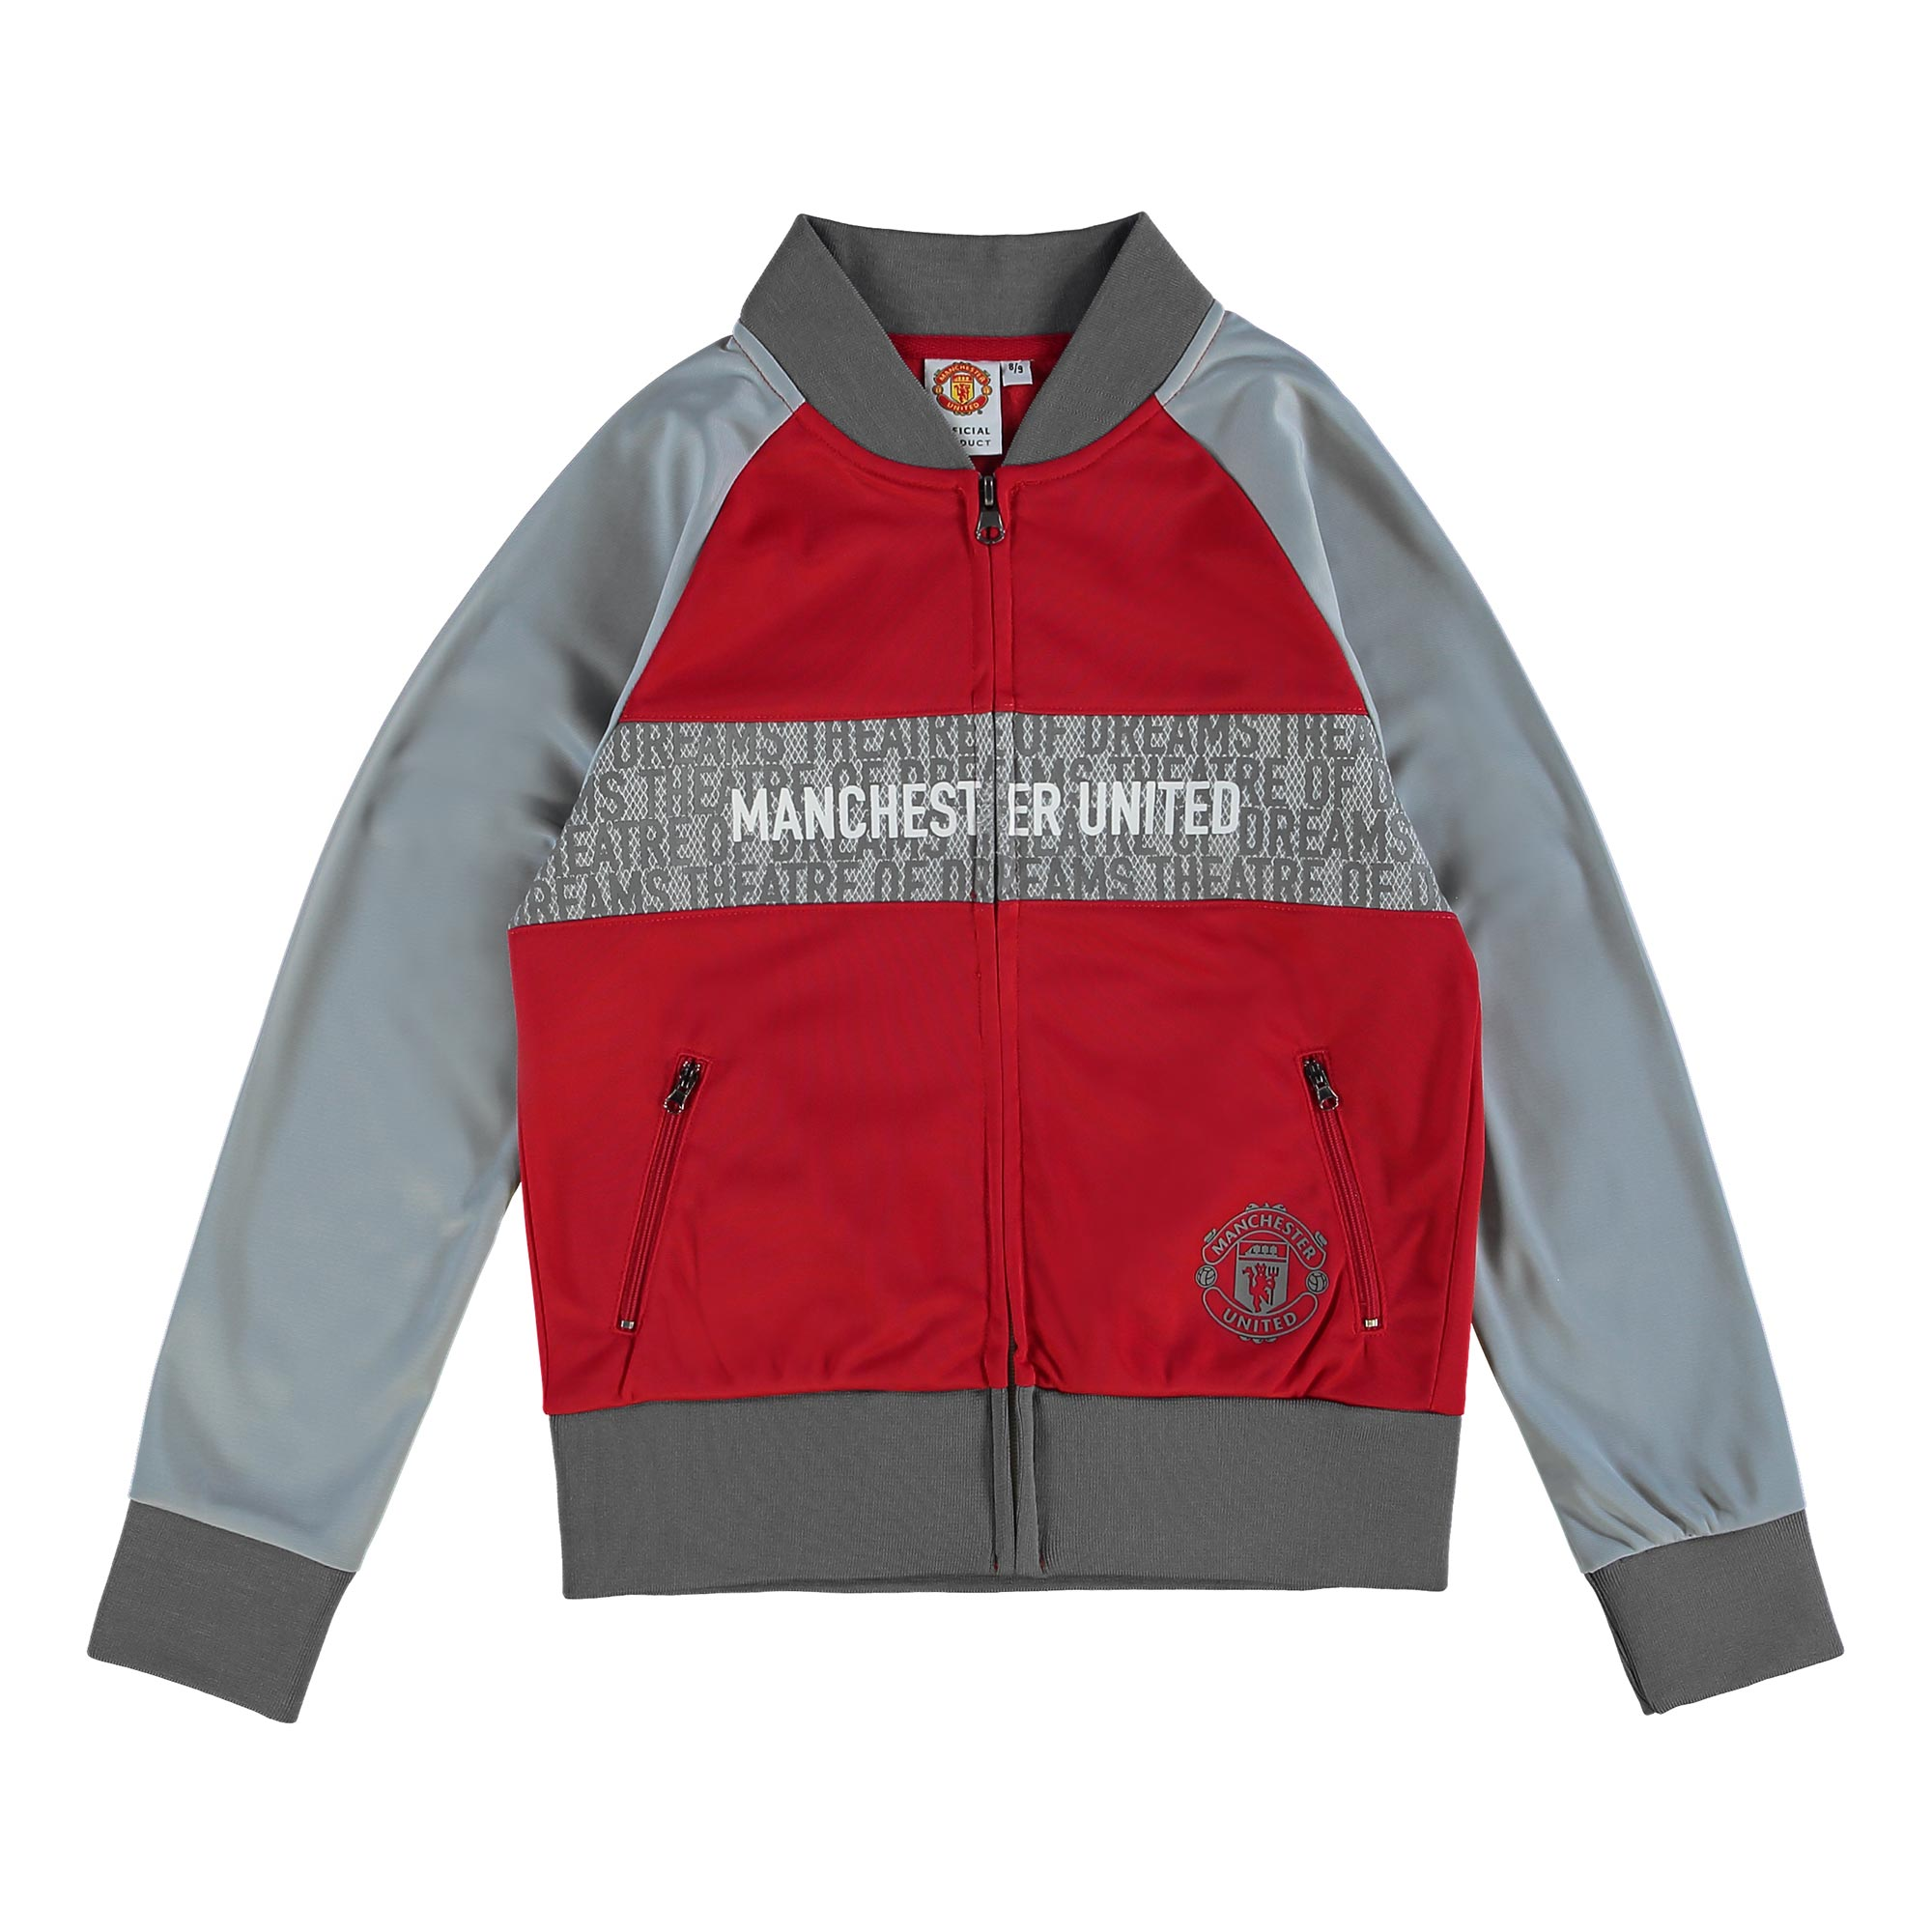 Manchester United Track Jacket - Red/Grey - Girls